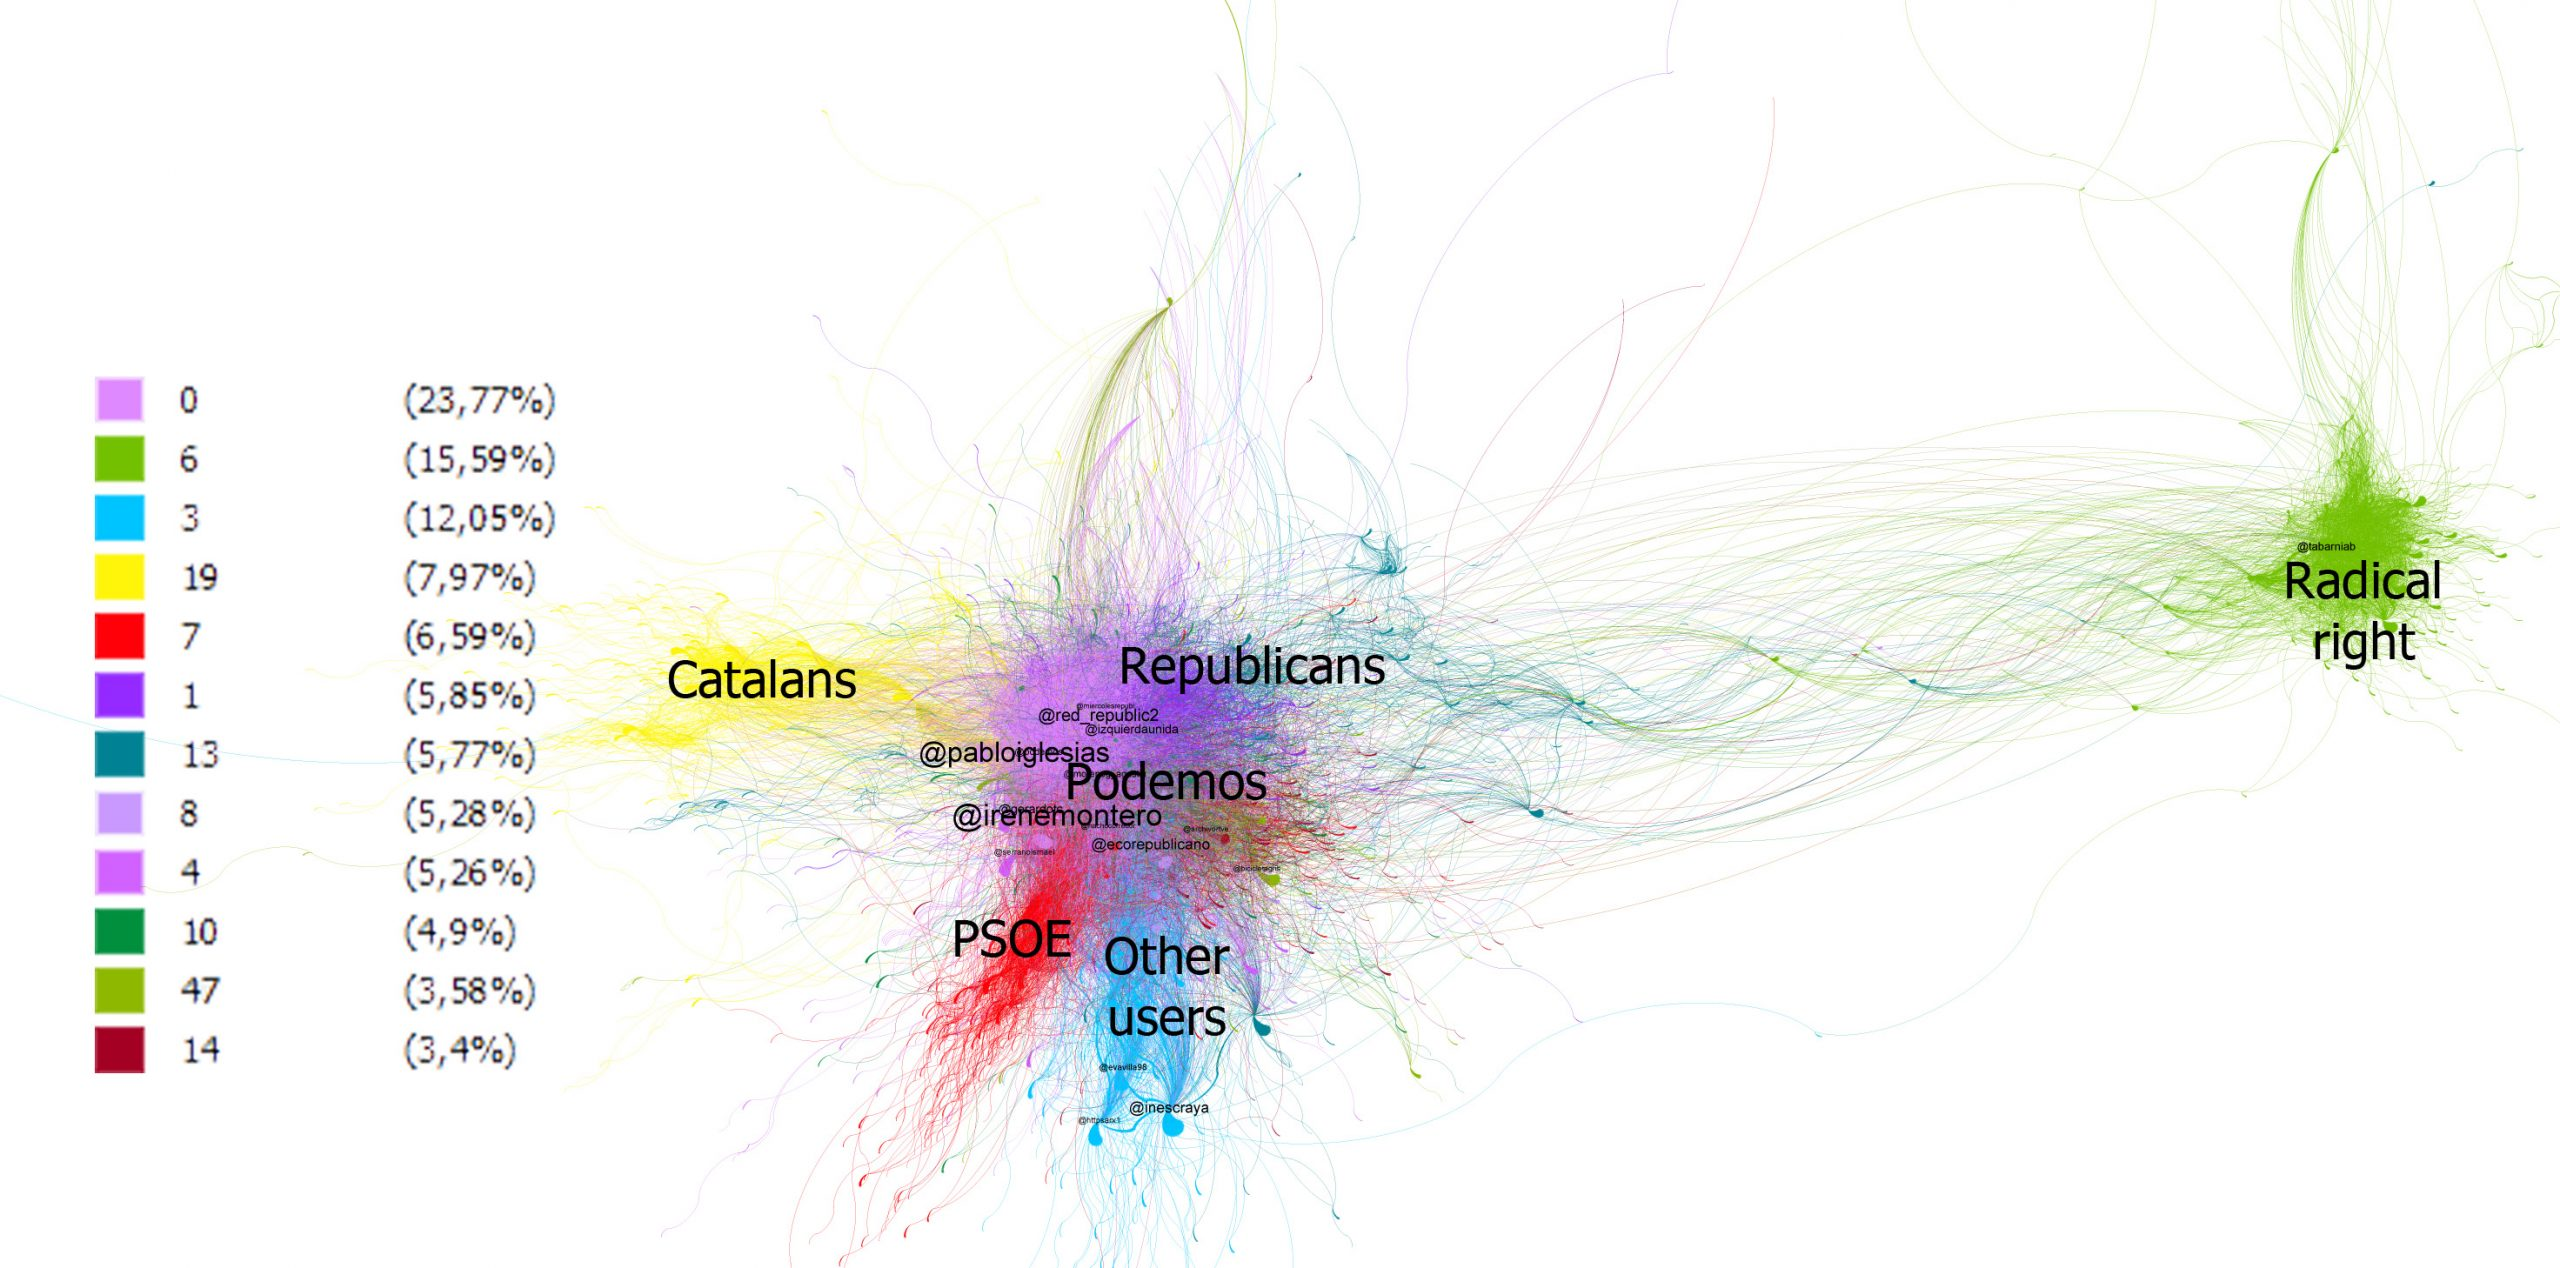 GRAPH 2. DISSEMINATION OF TWEETS IN THE CONTEXT OF THE SECOND SPANISH REPUBLIC